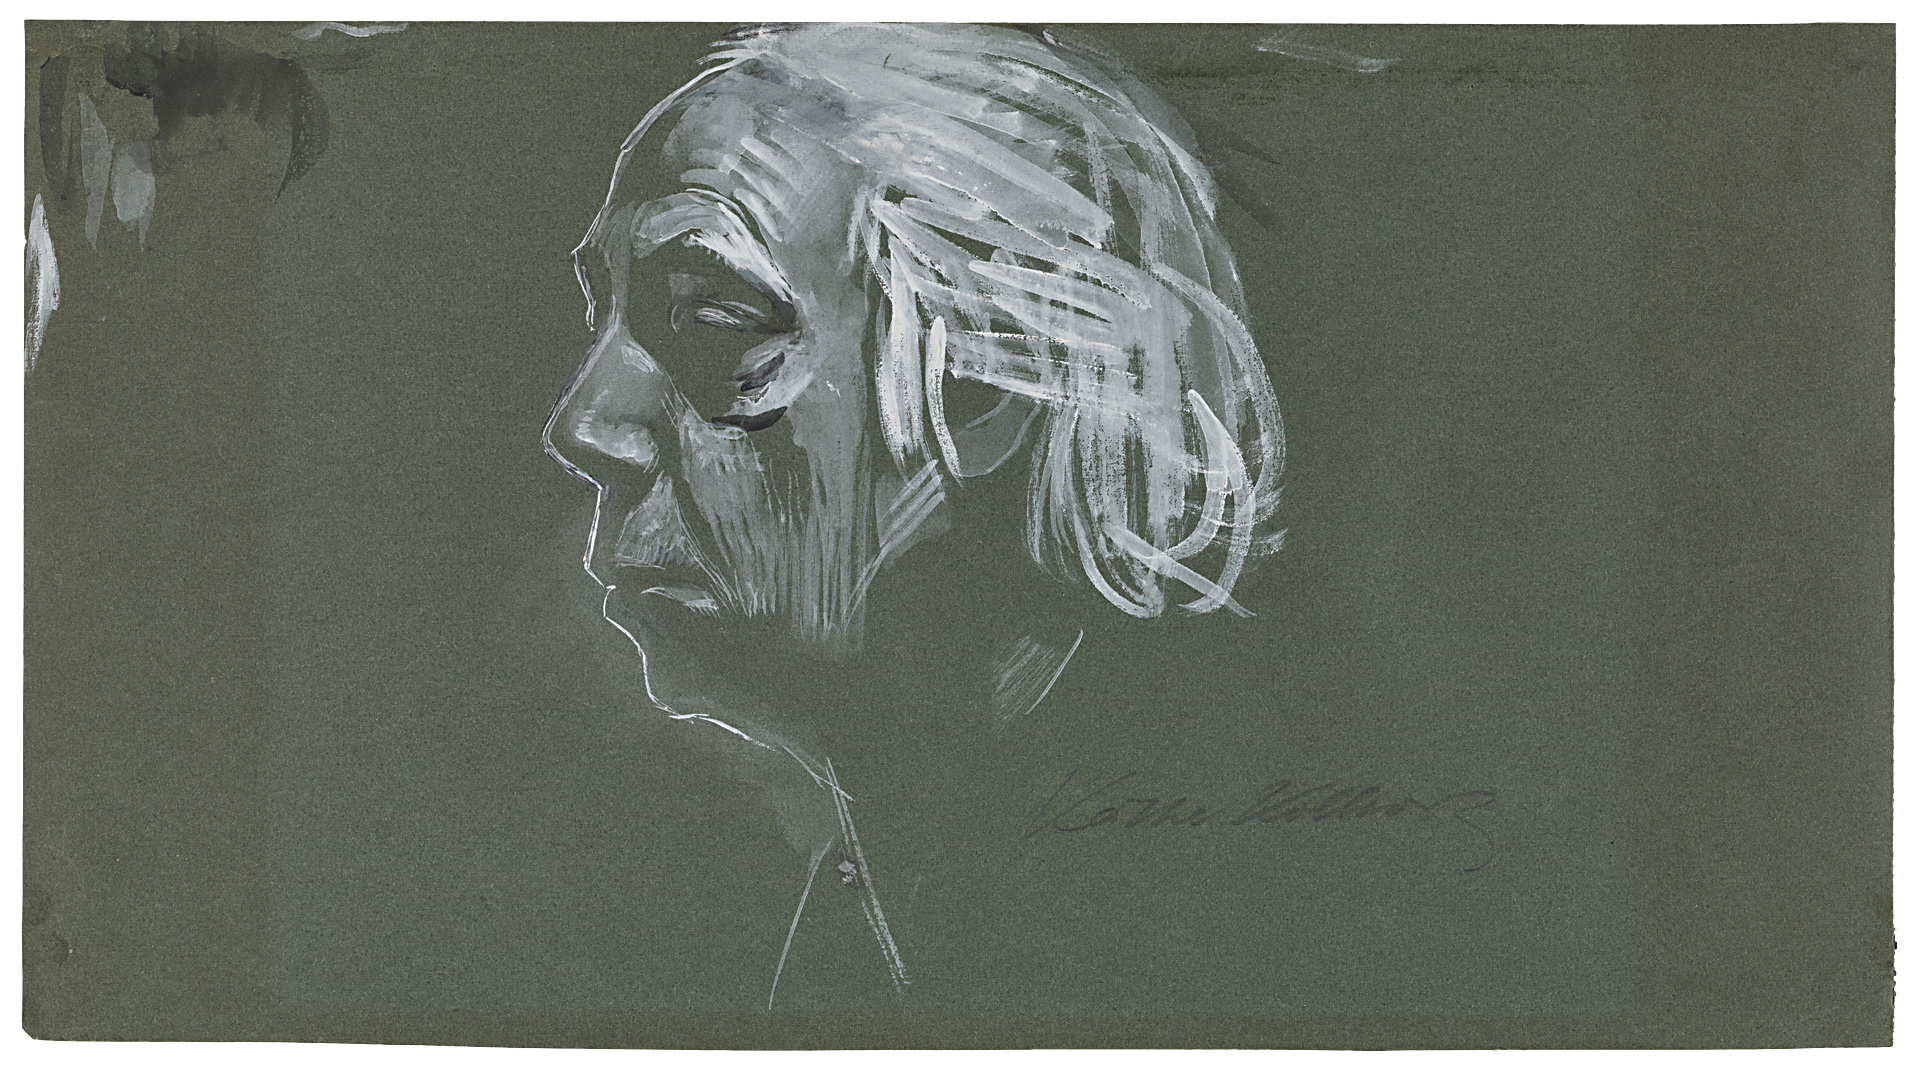 Käthe Kollwitz, Self-portrait in profile, looking left, 1924, brush and opaque white, partly washed in black, on dark-green drawing paper, NT 1001, Cologne Kollwitz Collection © Käthe Kollwitz Museum Köln